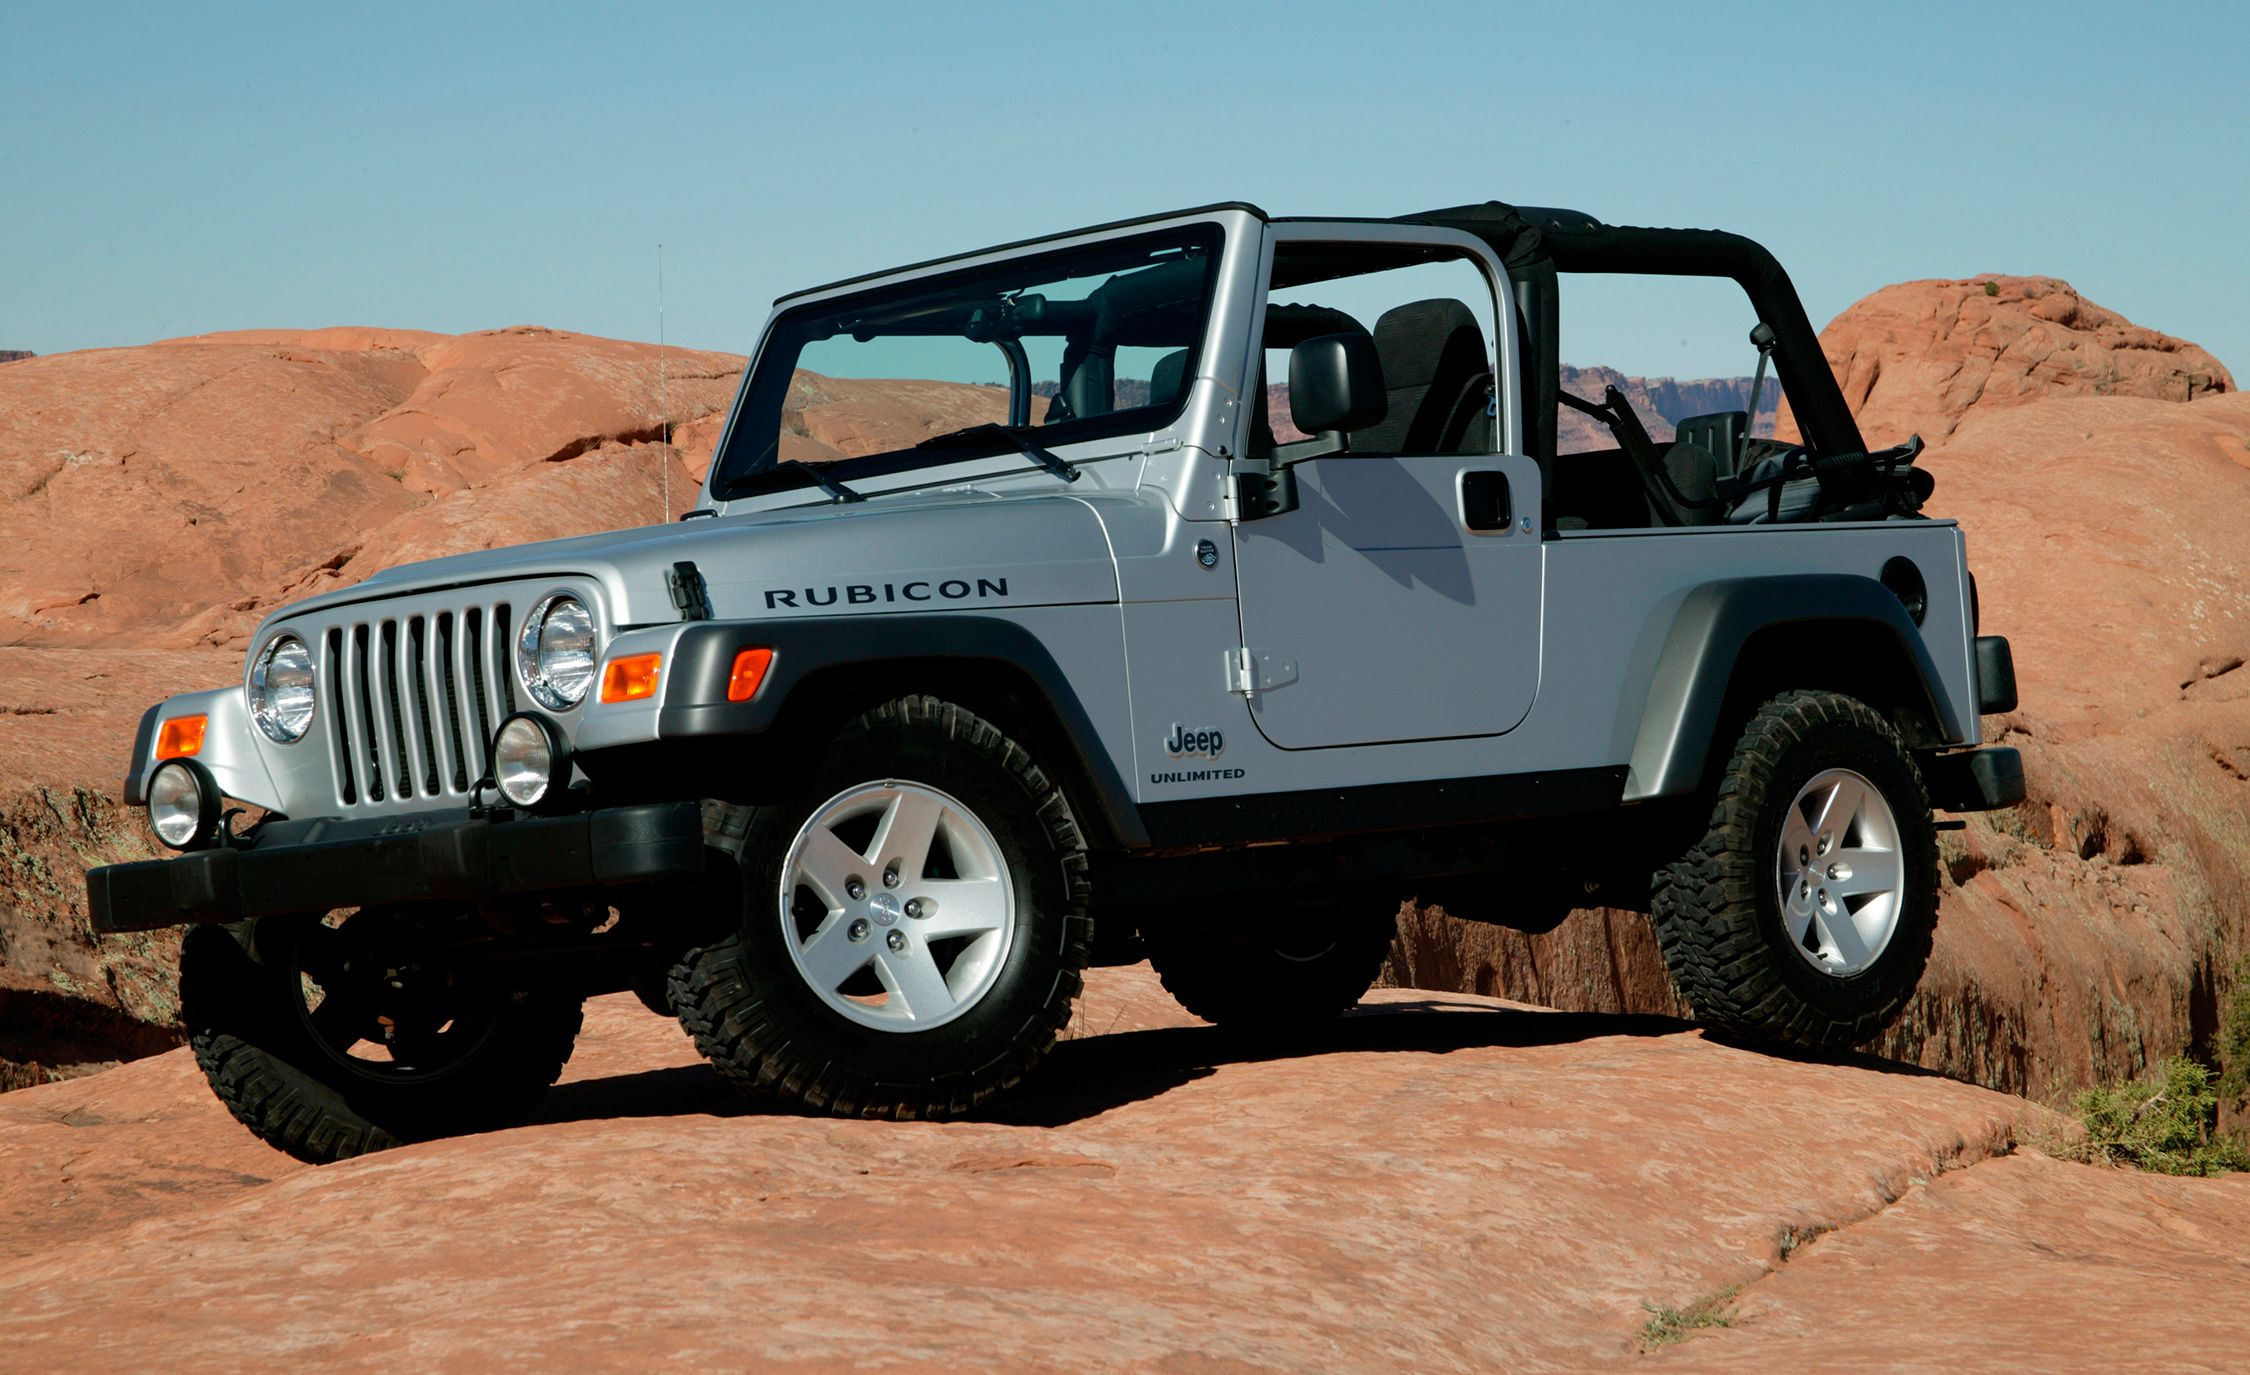 Will See A Wiring Diagram Of The 1988 Jeep Wrangler The 1988 Jeep